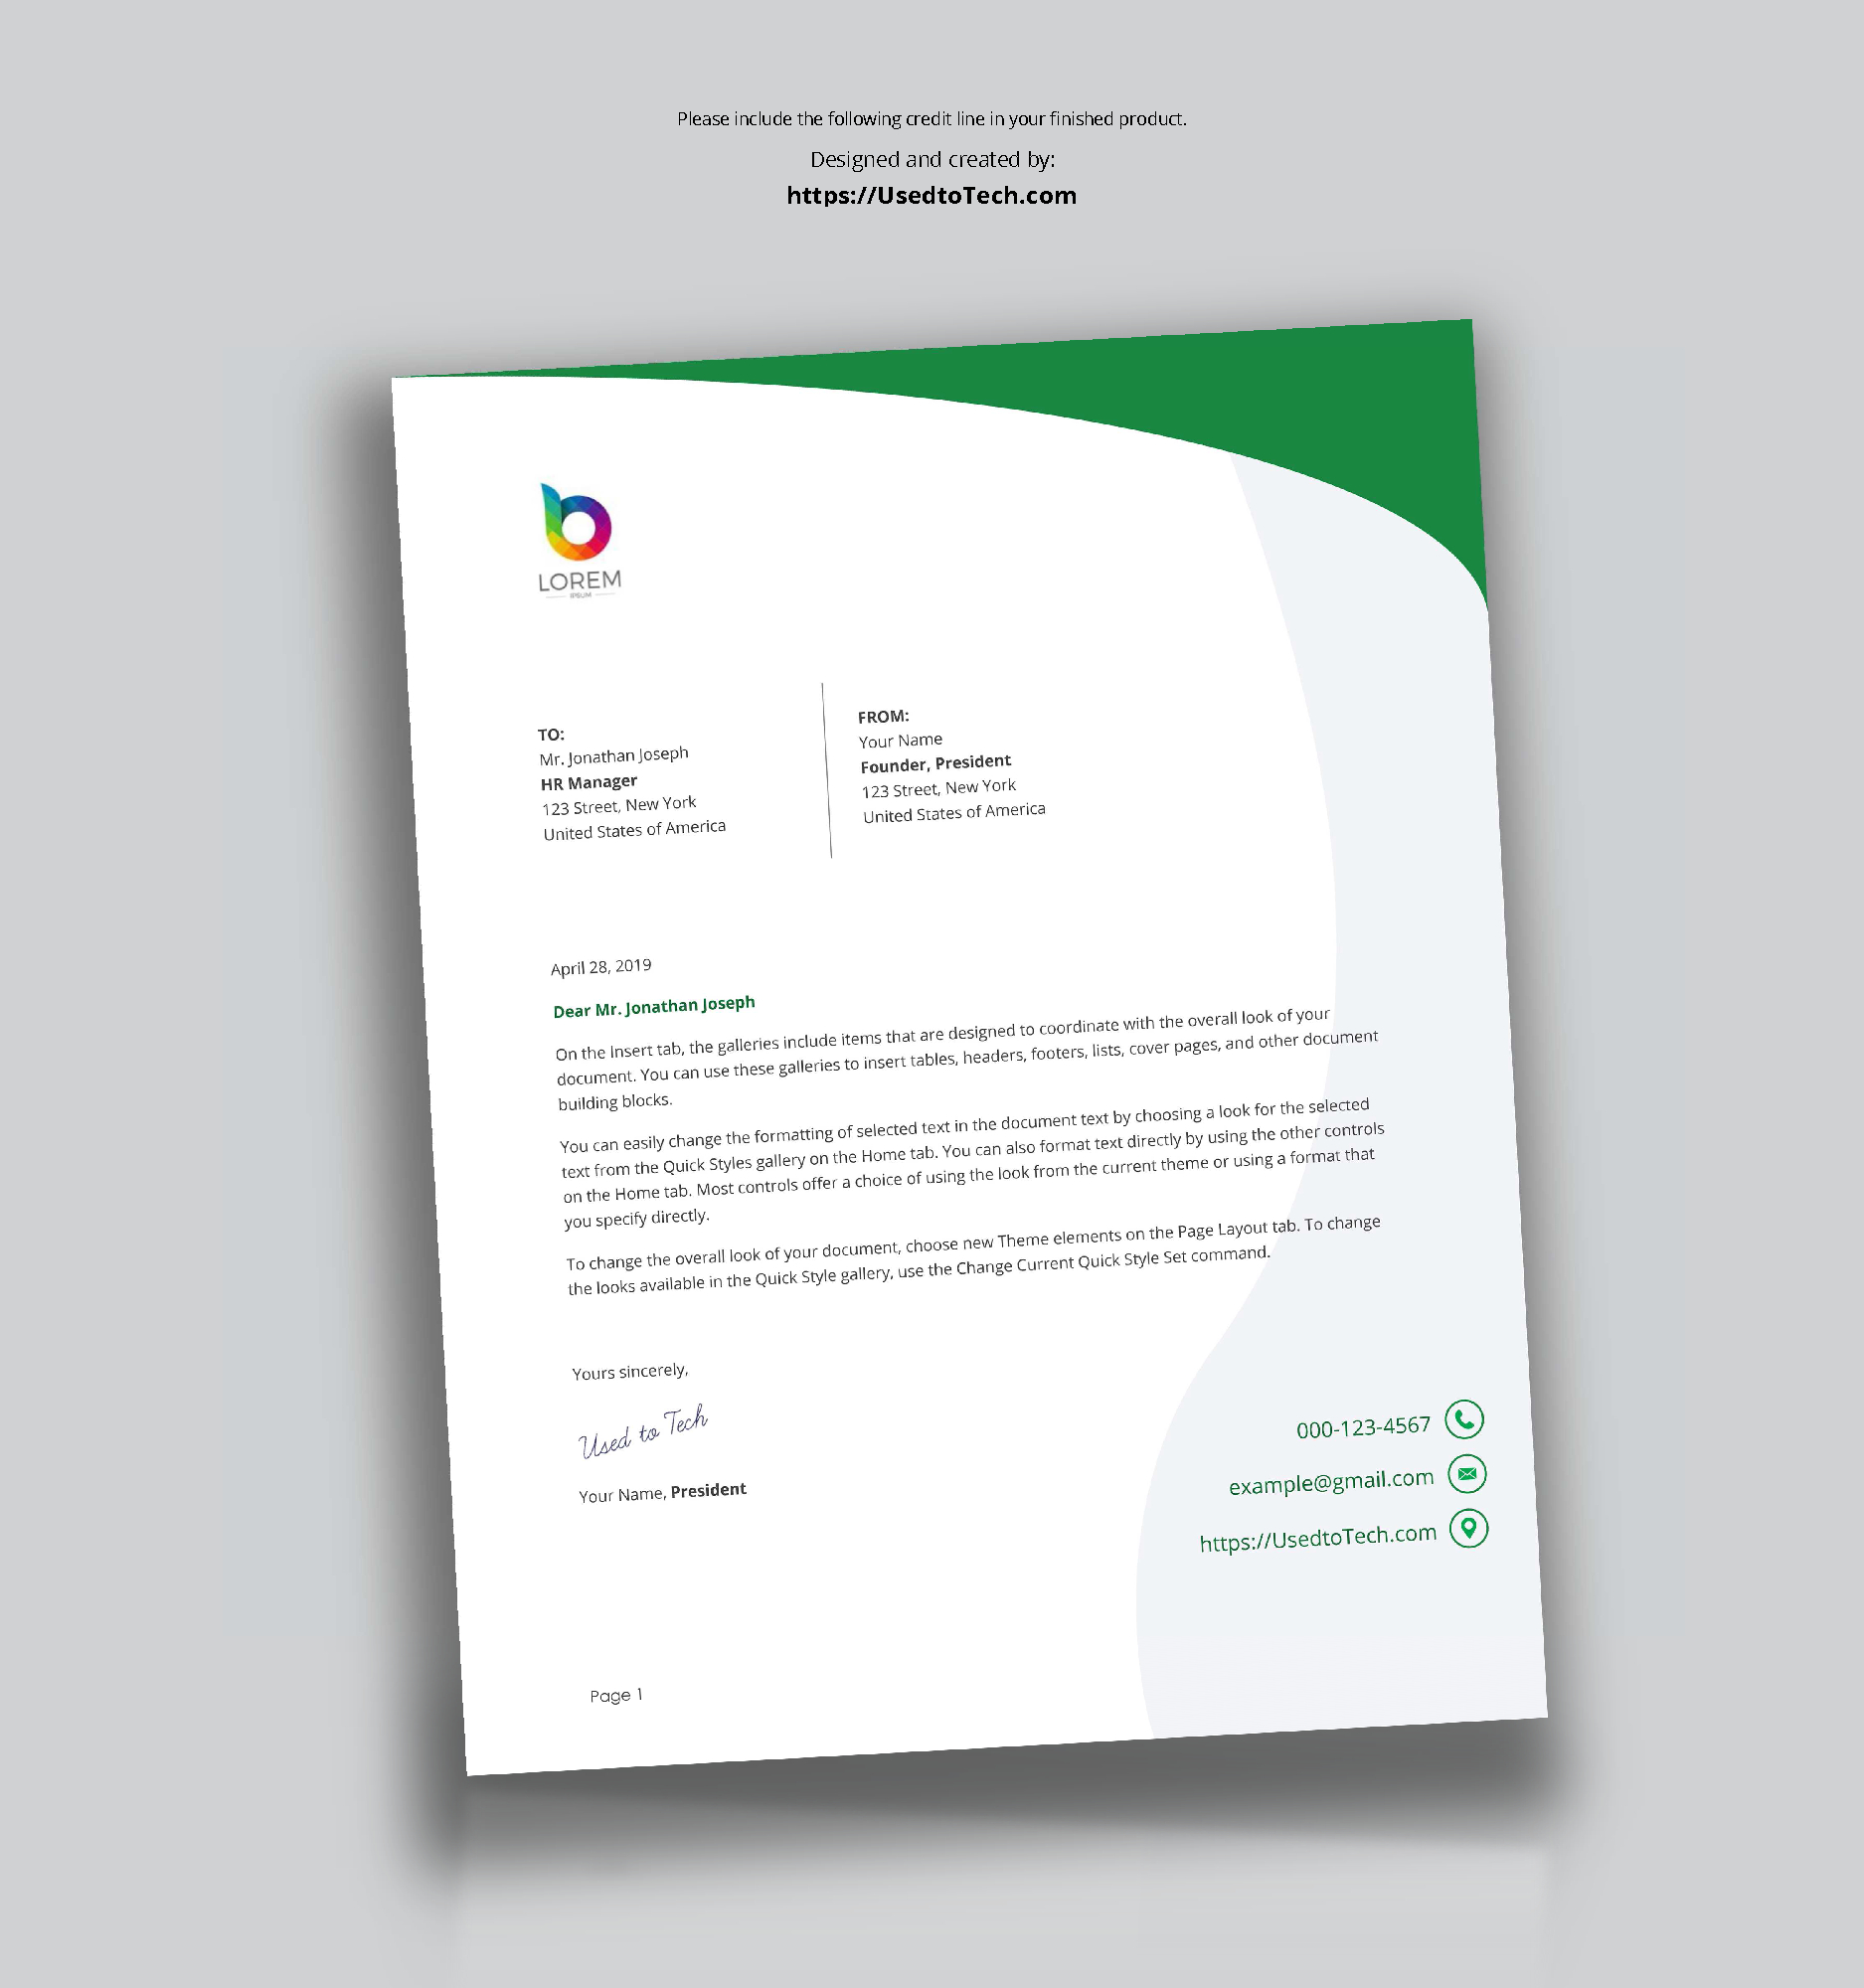 Perfect Letterhead Design In Word Free - Used To Tech With Free Letterhead Templates For Microsoft Word